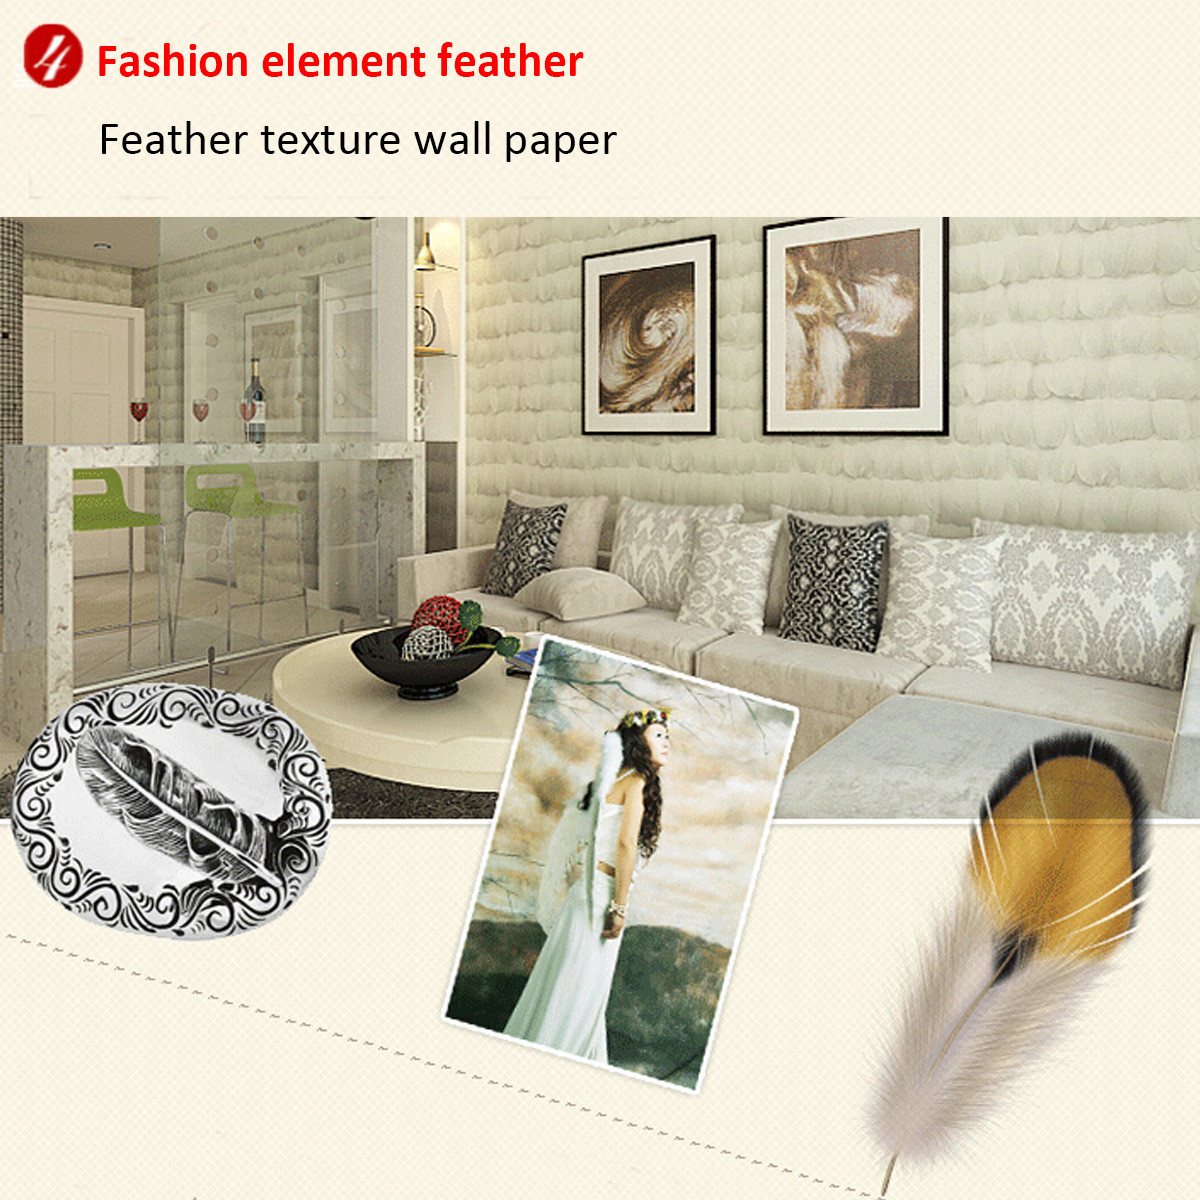 10m Non-woven Feather Wallpaper Living Room Bedroom Background Decoration Home Improvement Decor